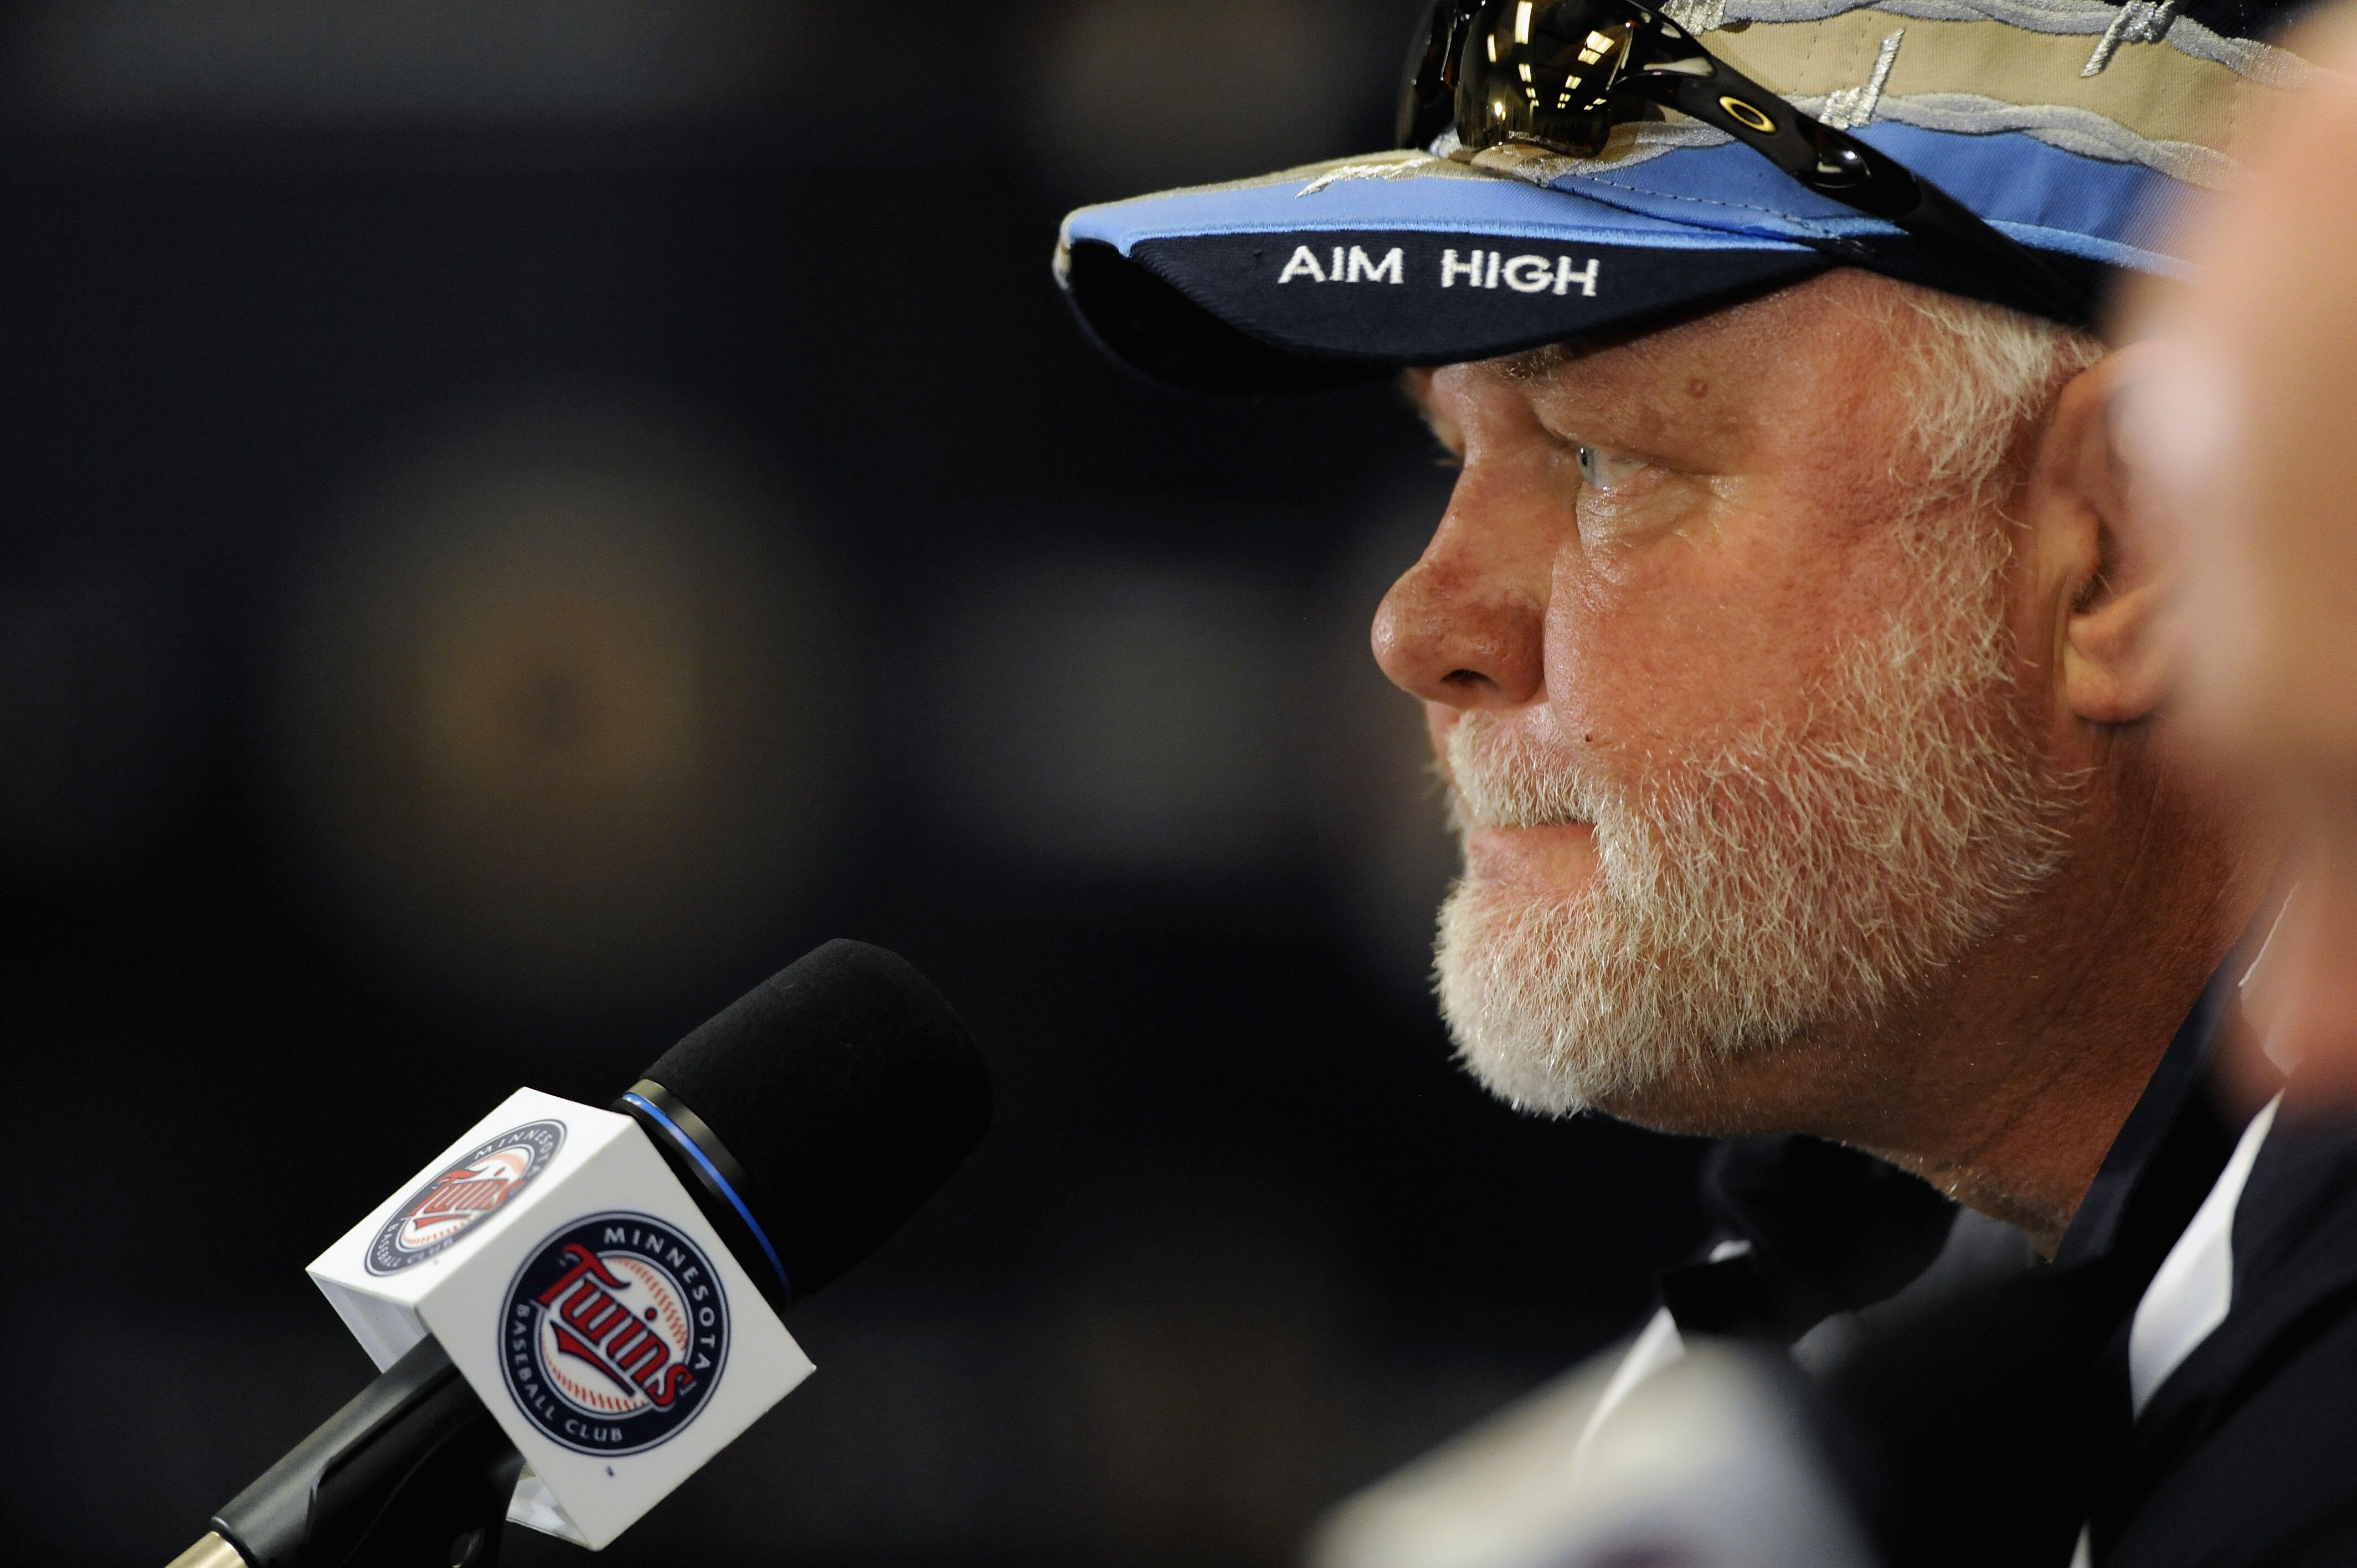 456345308-minnesota-twins-announce-they-will-replace-ron-gardenhire-as-manager.jpg